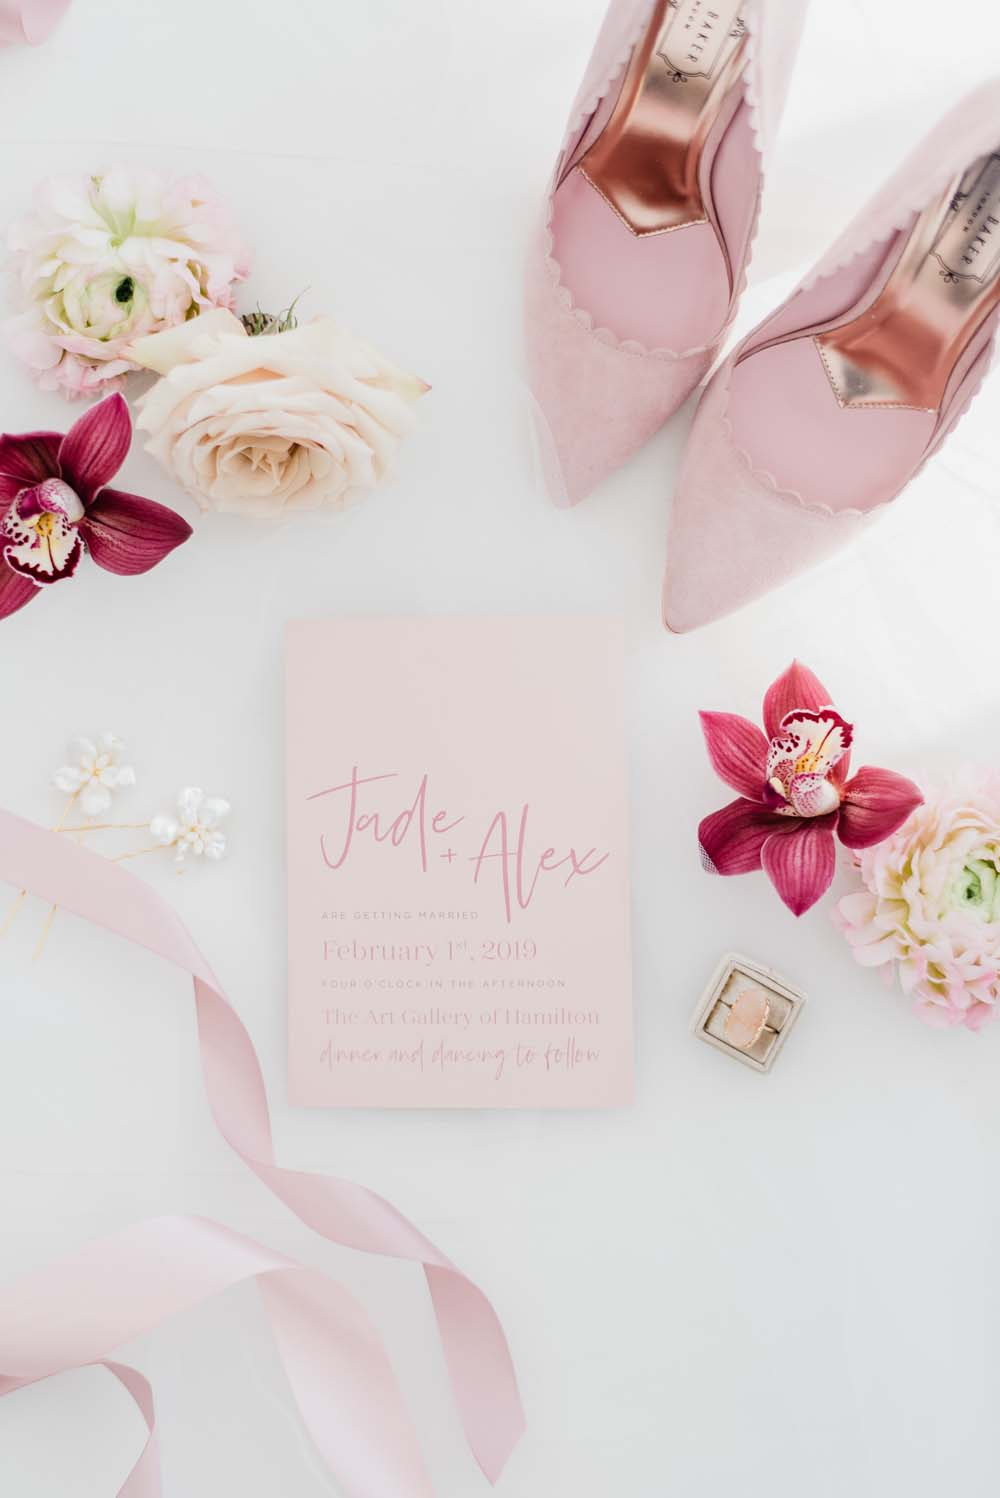 A Colourful Pink & Mauve Styled Shoot At The Art Gallery of Hamilton - Getting Ready